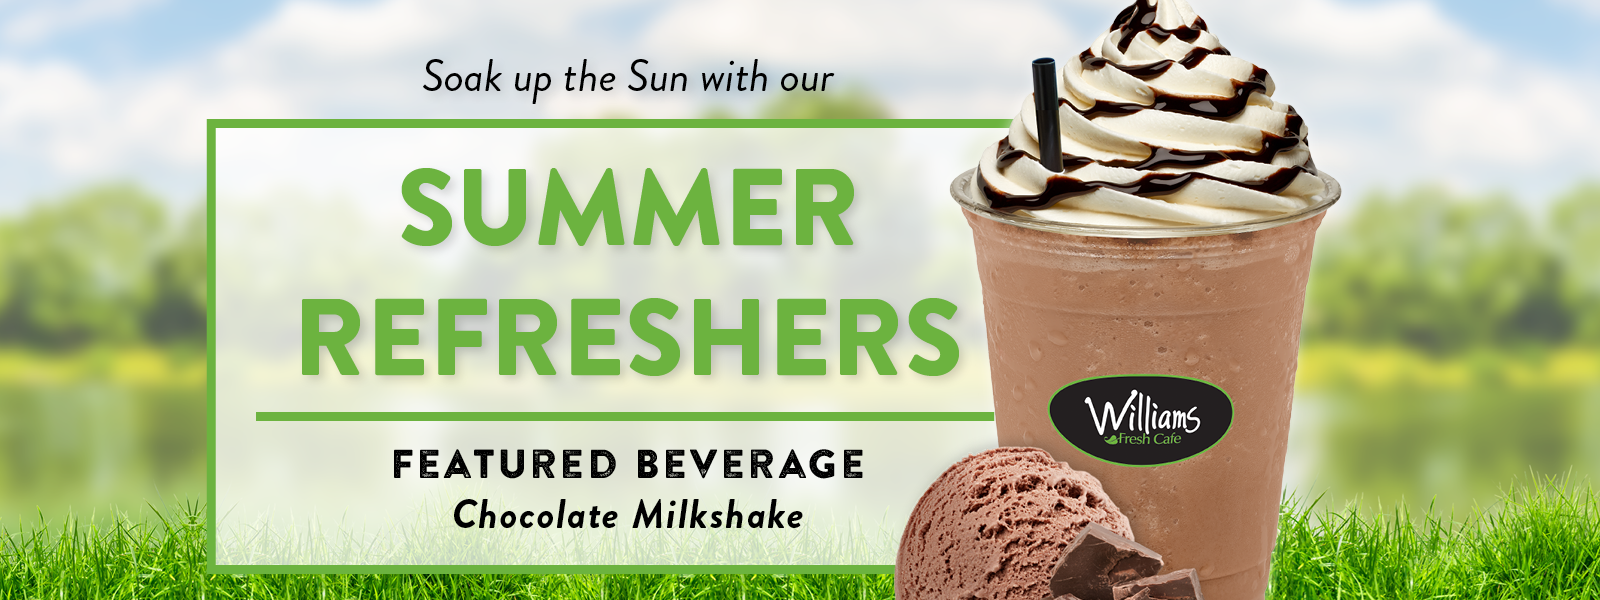 Chocolate Milkshake Summer Refreshers